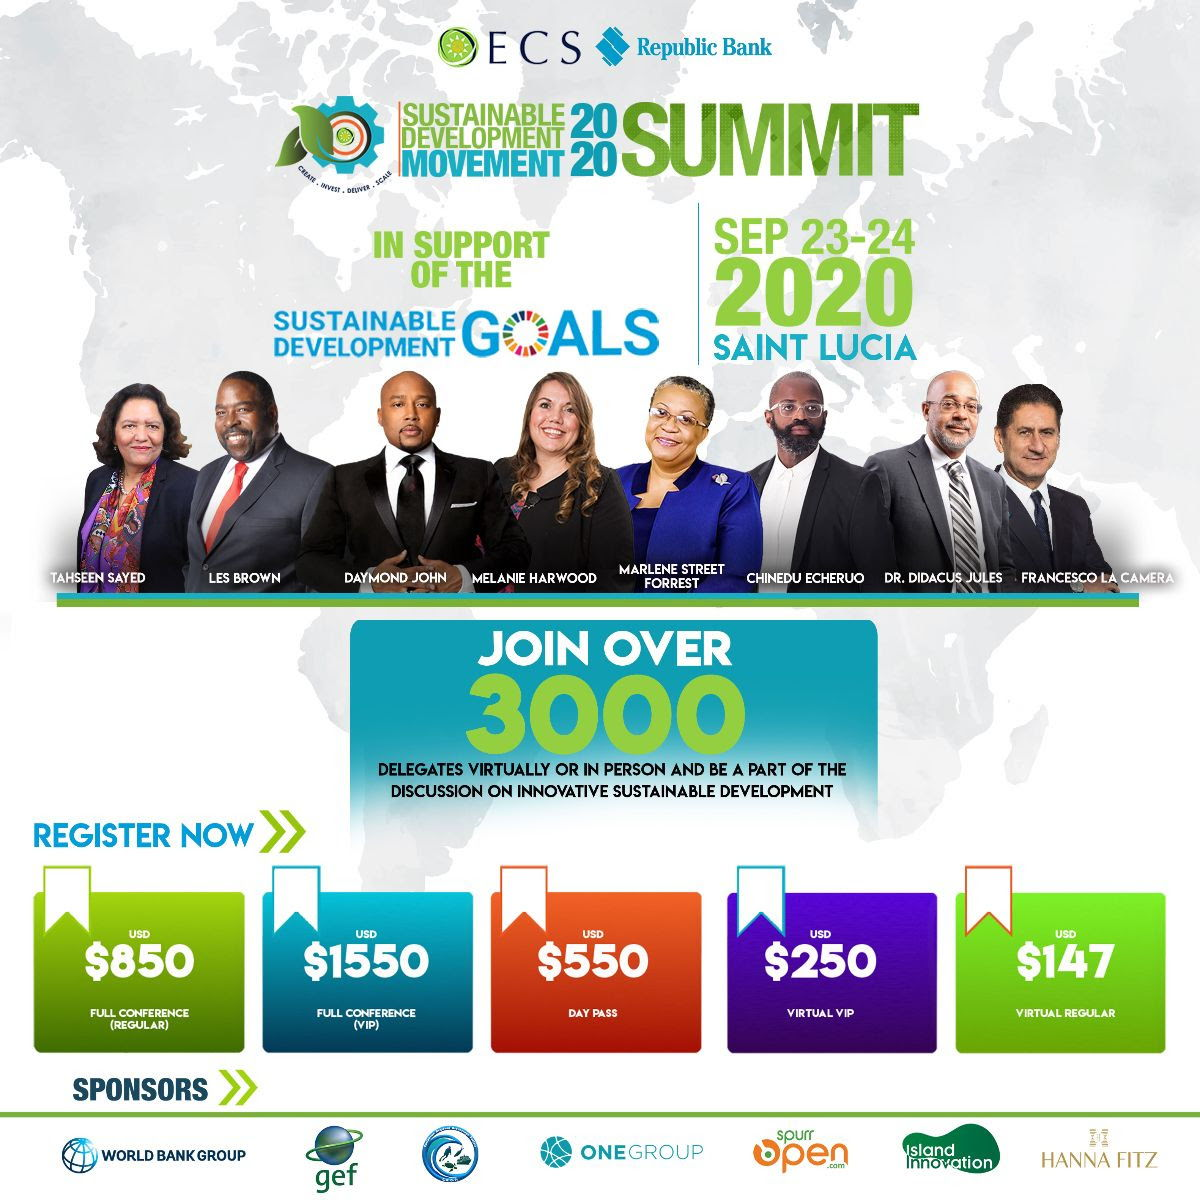 The OECS Republic Bank Business Model Competition is a feature of the Sustainable Development Movement scheduled for September 23-24, 2020. Click the image above to learn more about the #Movement and register.